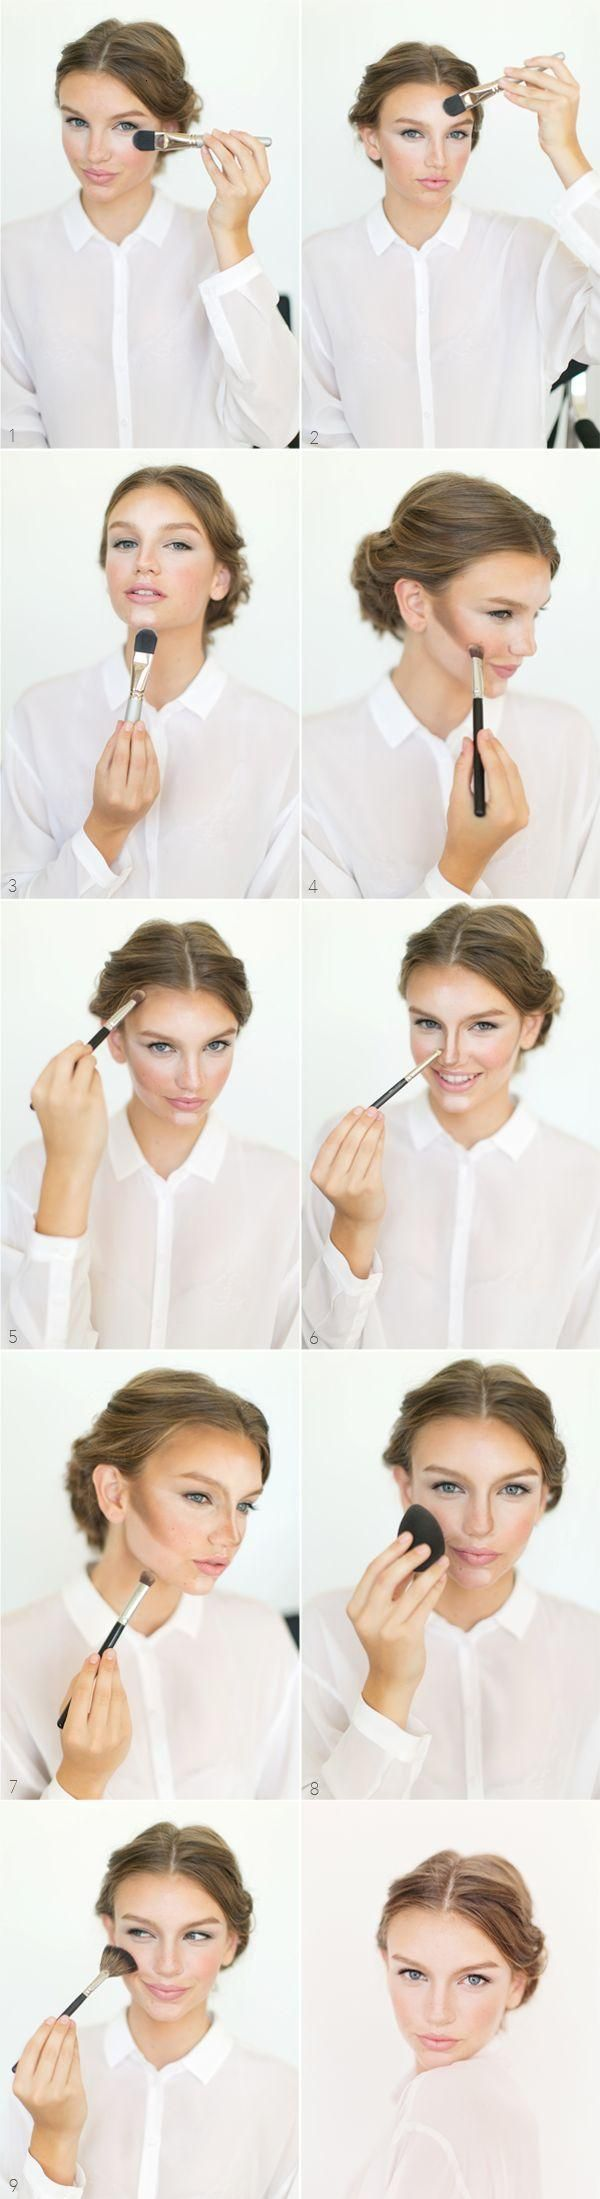 best images about eye tins on pinterest diy makeup white